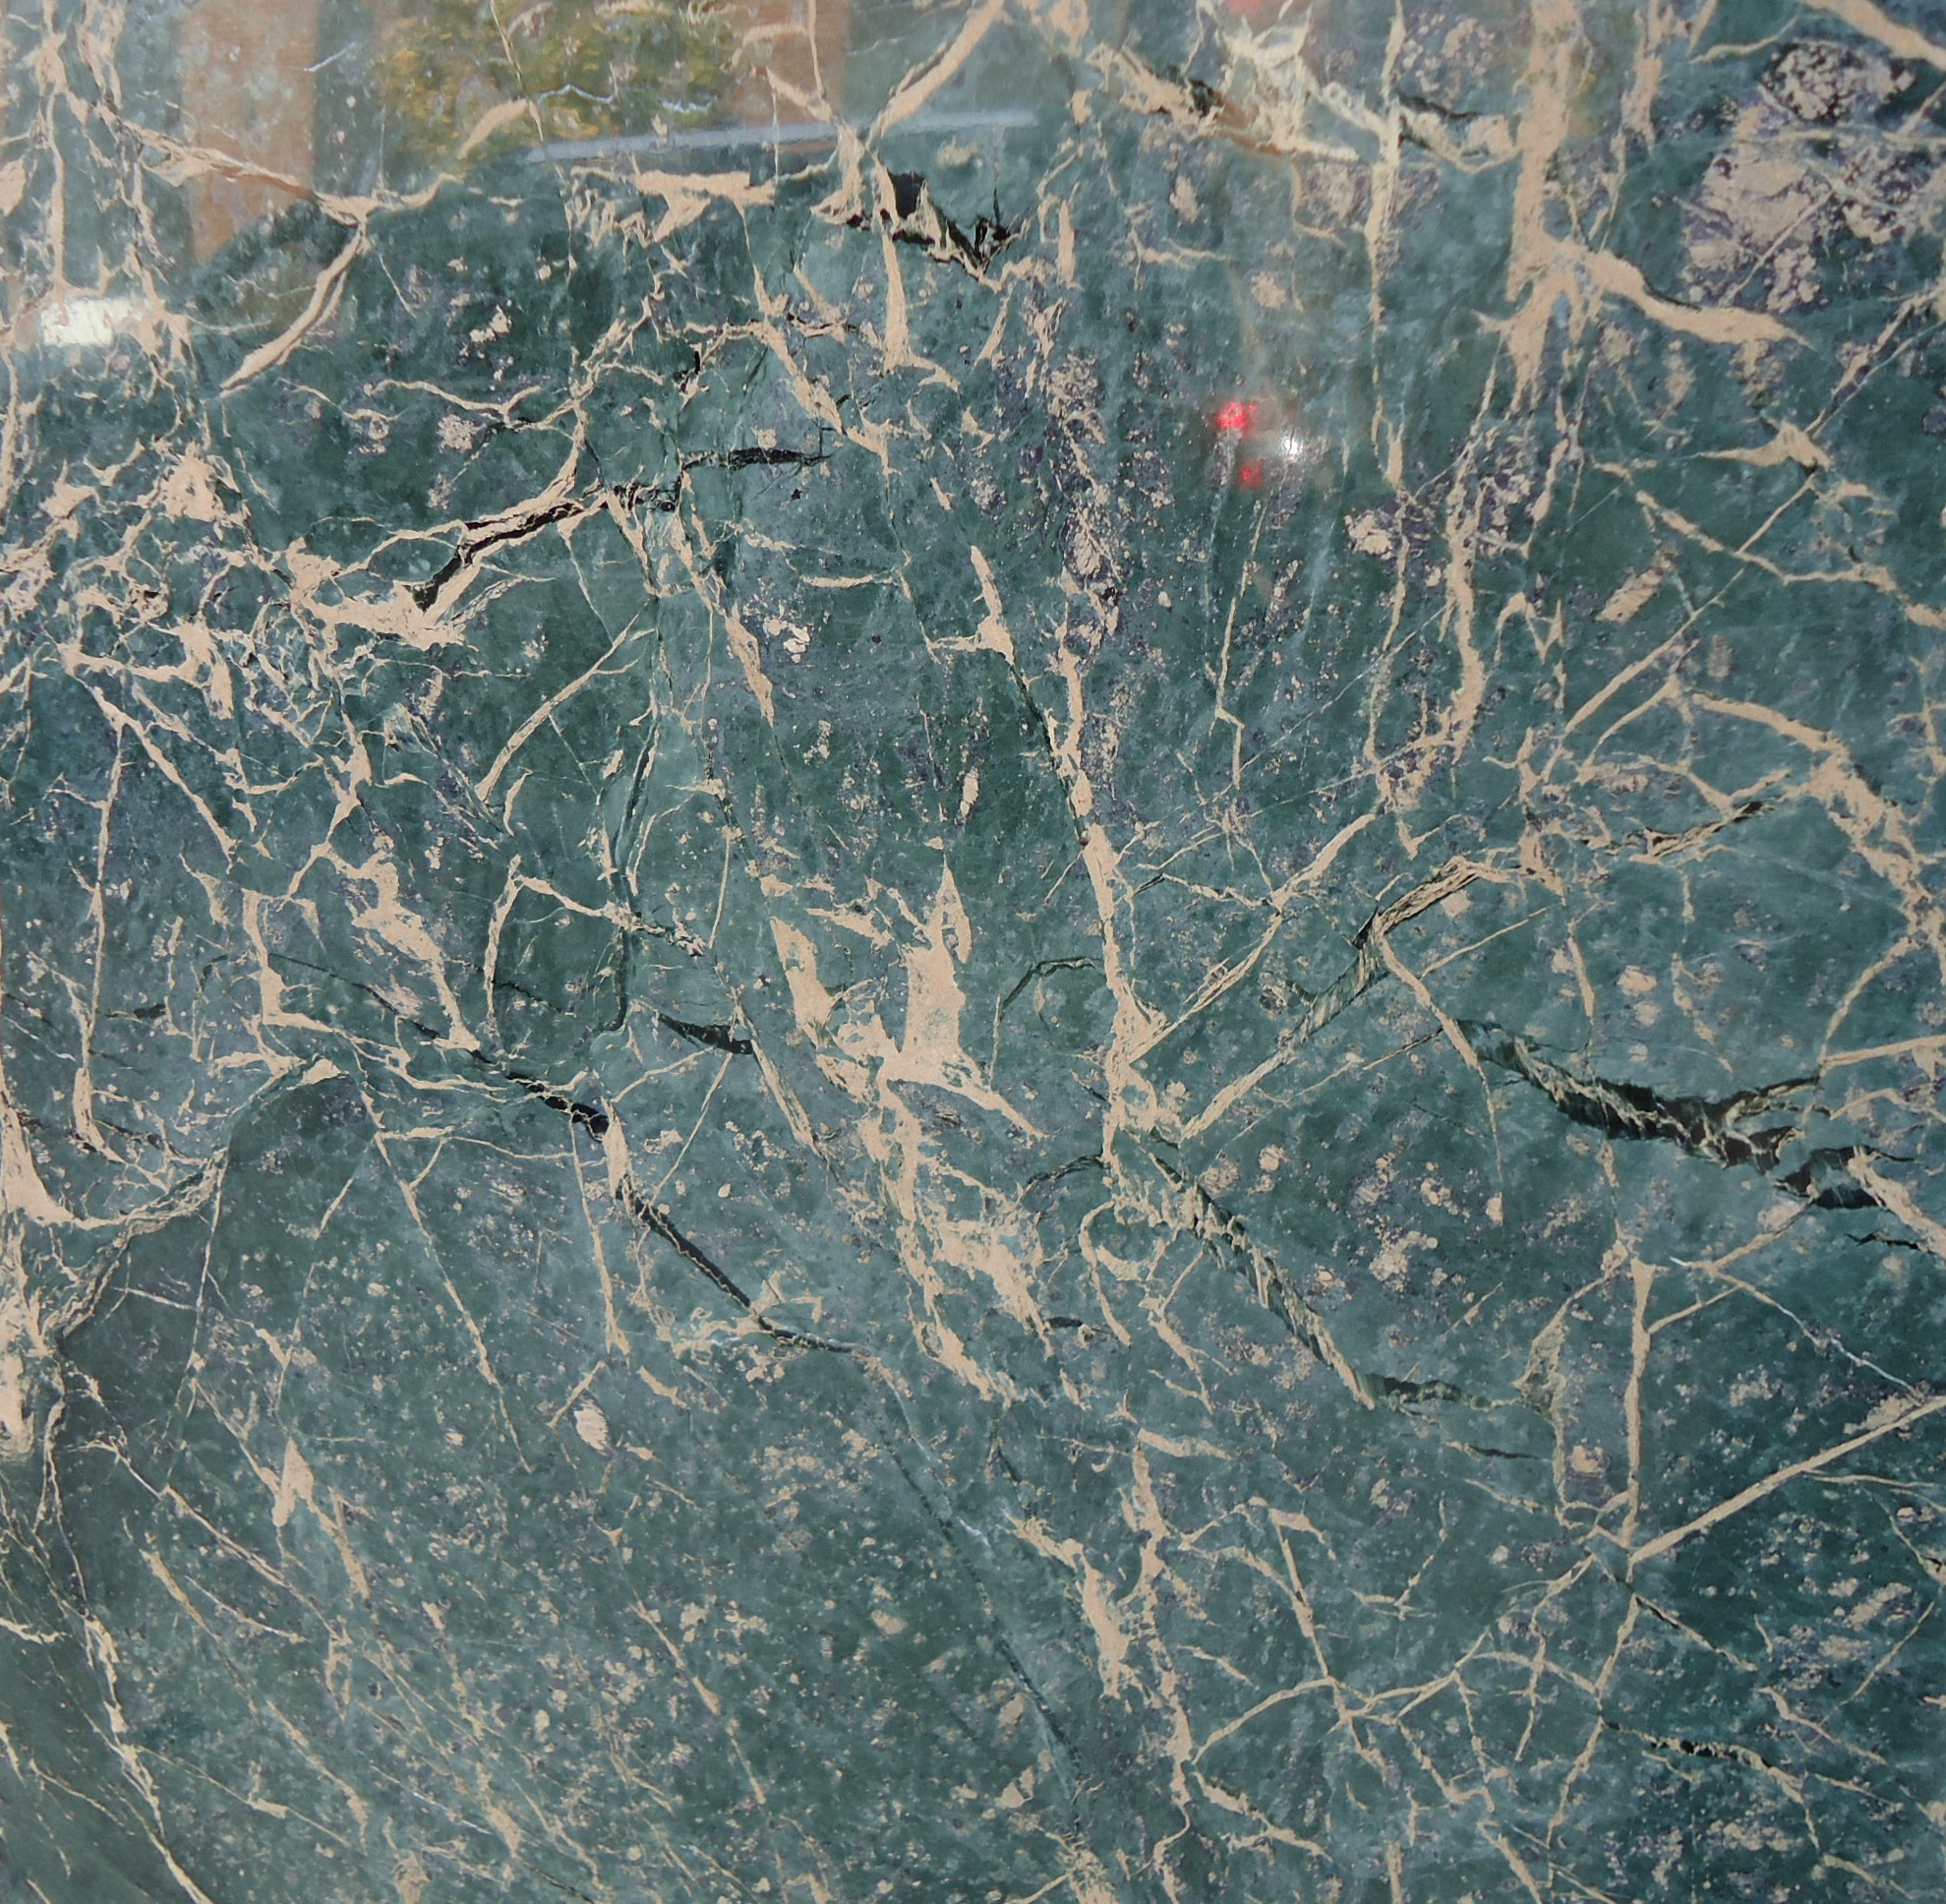 File:Surface exterior vertical wall granite or marble with reflections ...